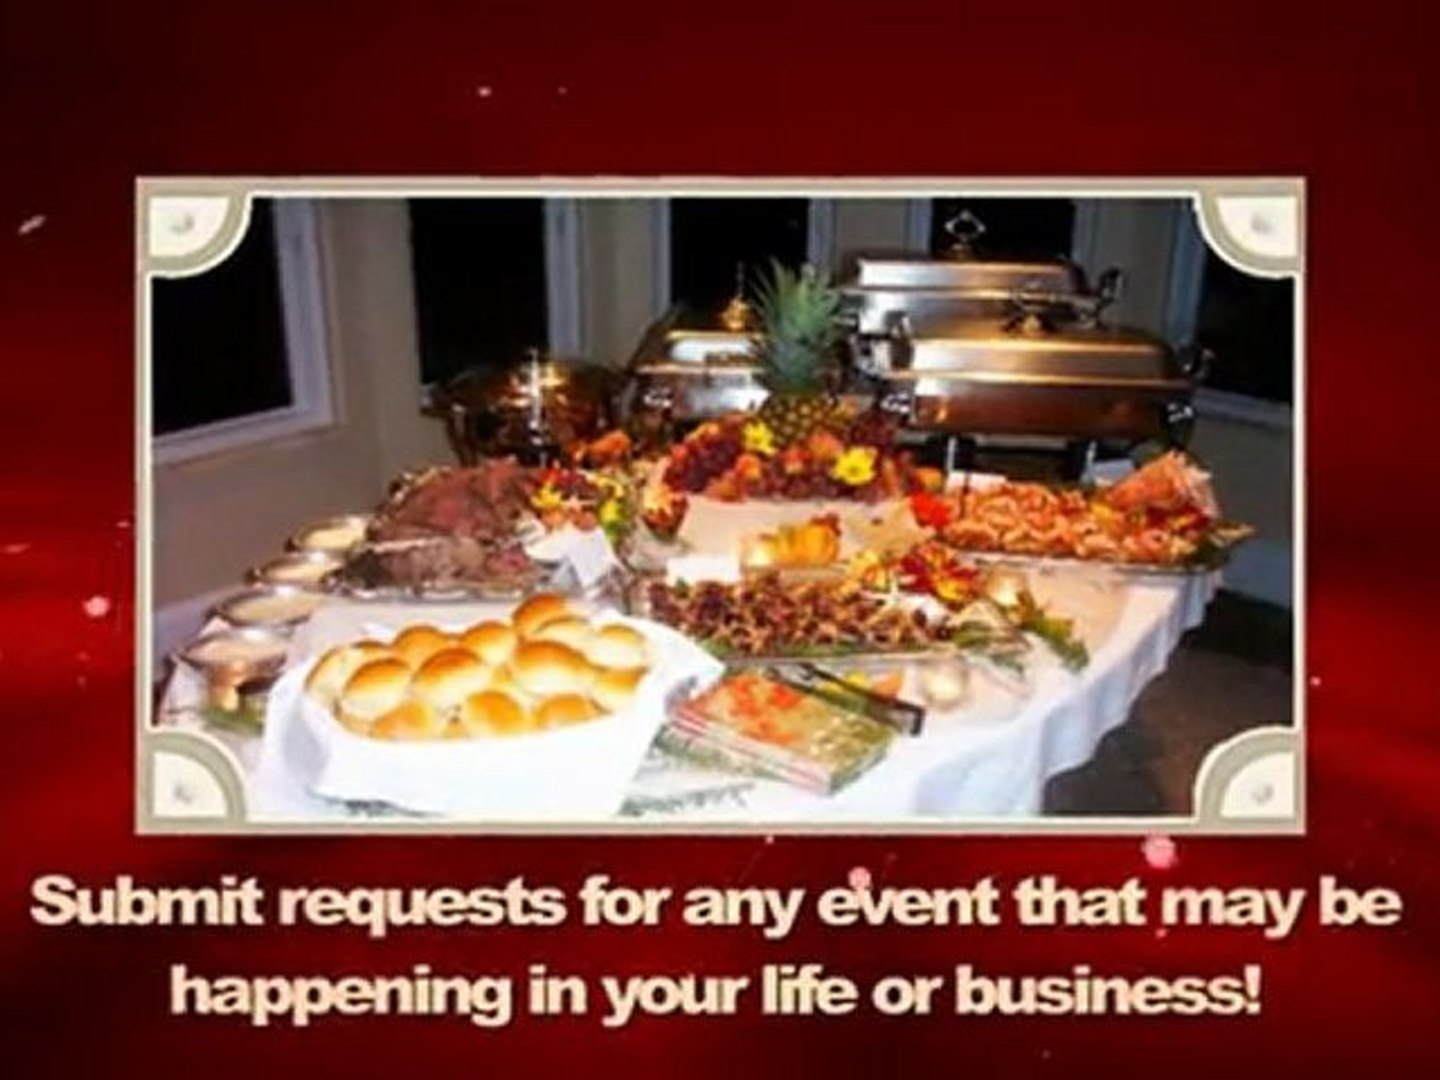 Event Planner - Check out our website to find an Event Planner, travel agent and party planning